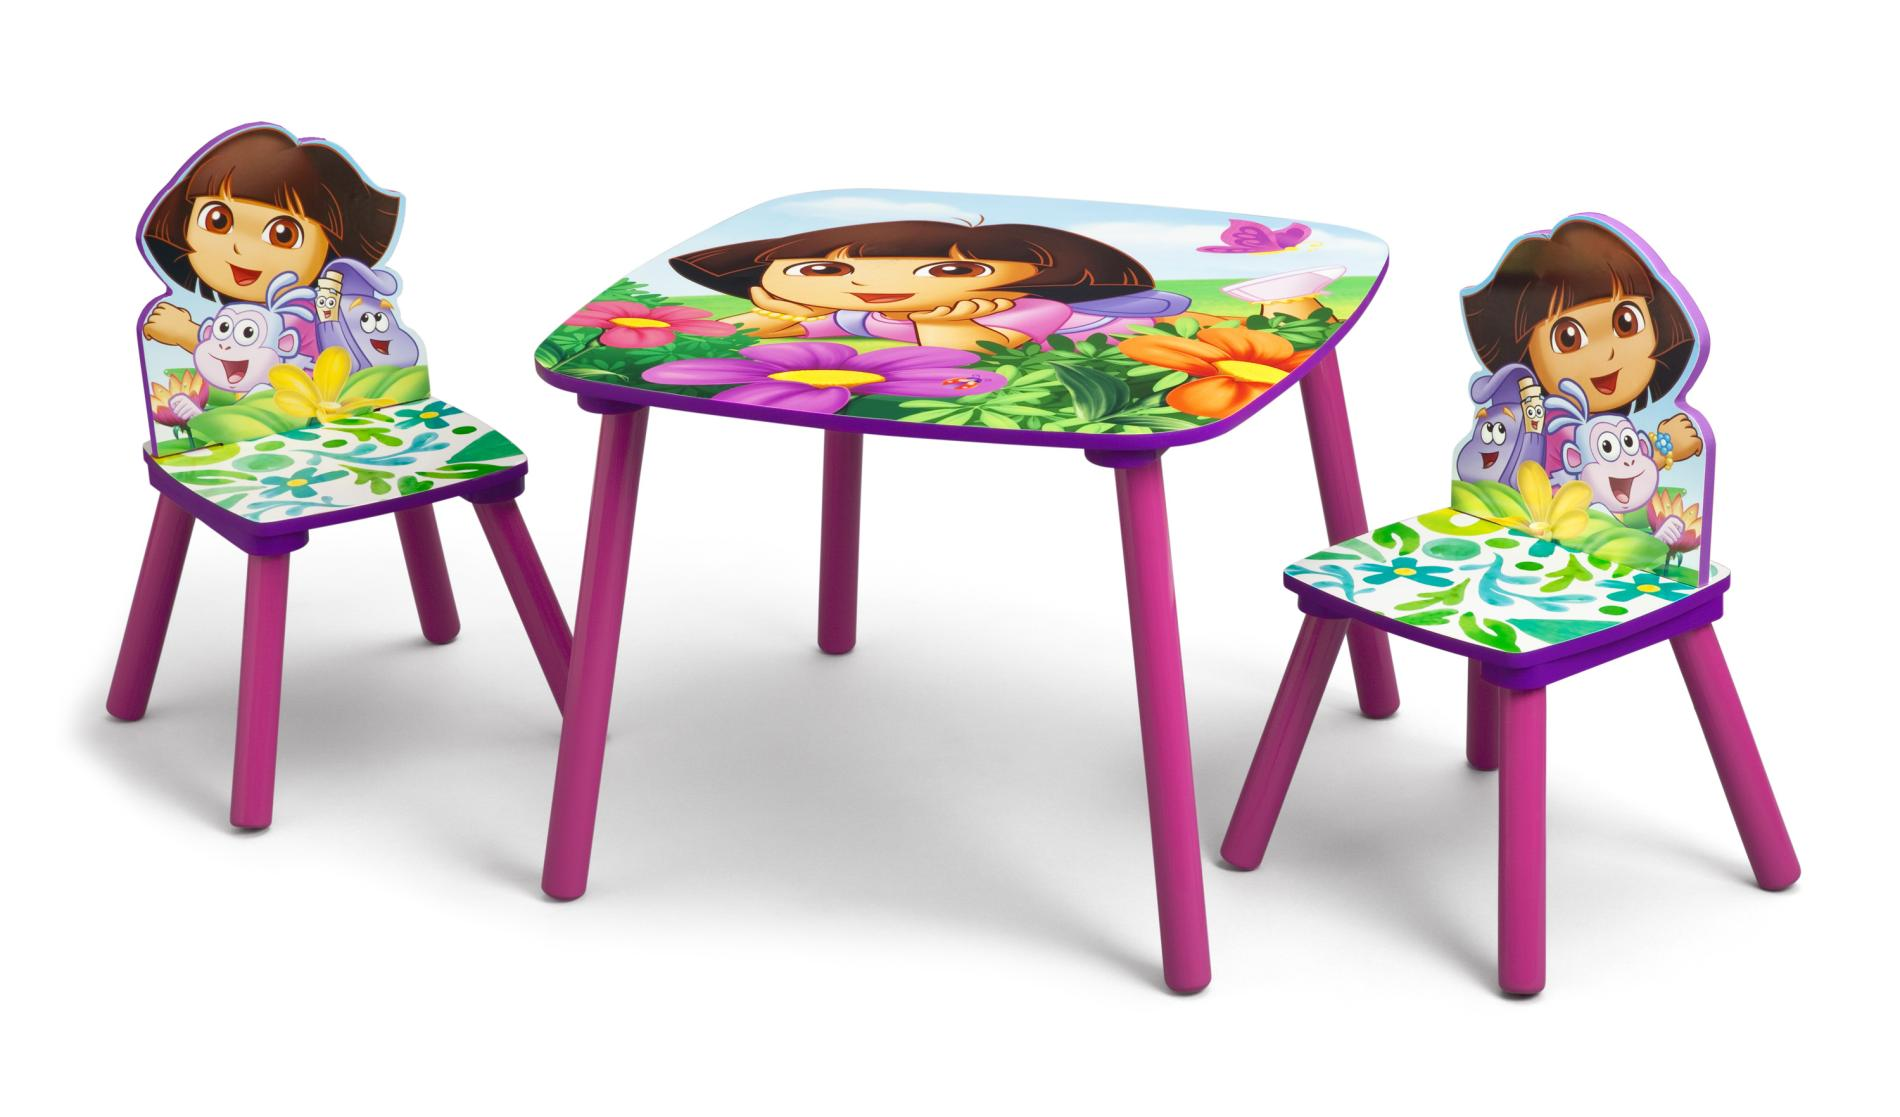 kids table and chair set kmart knoll rocking nickelodeon dora the explorer toddler 2 chairs